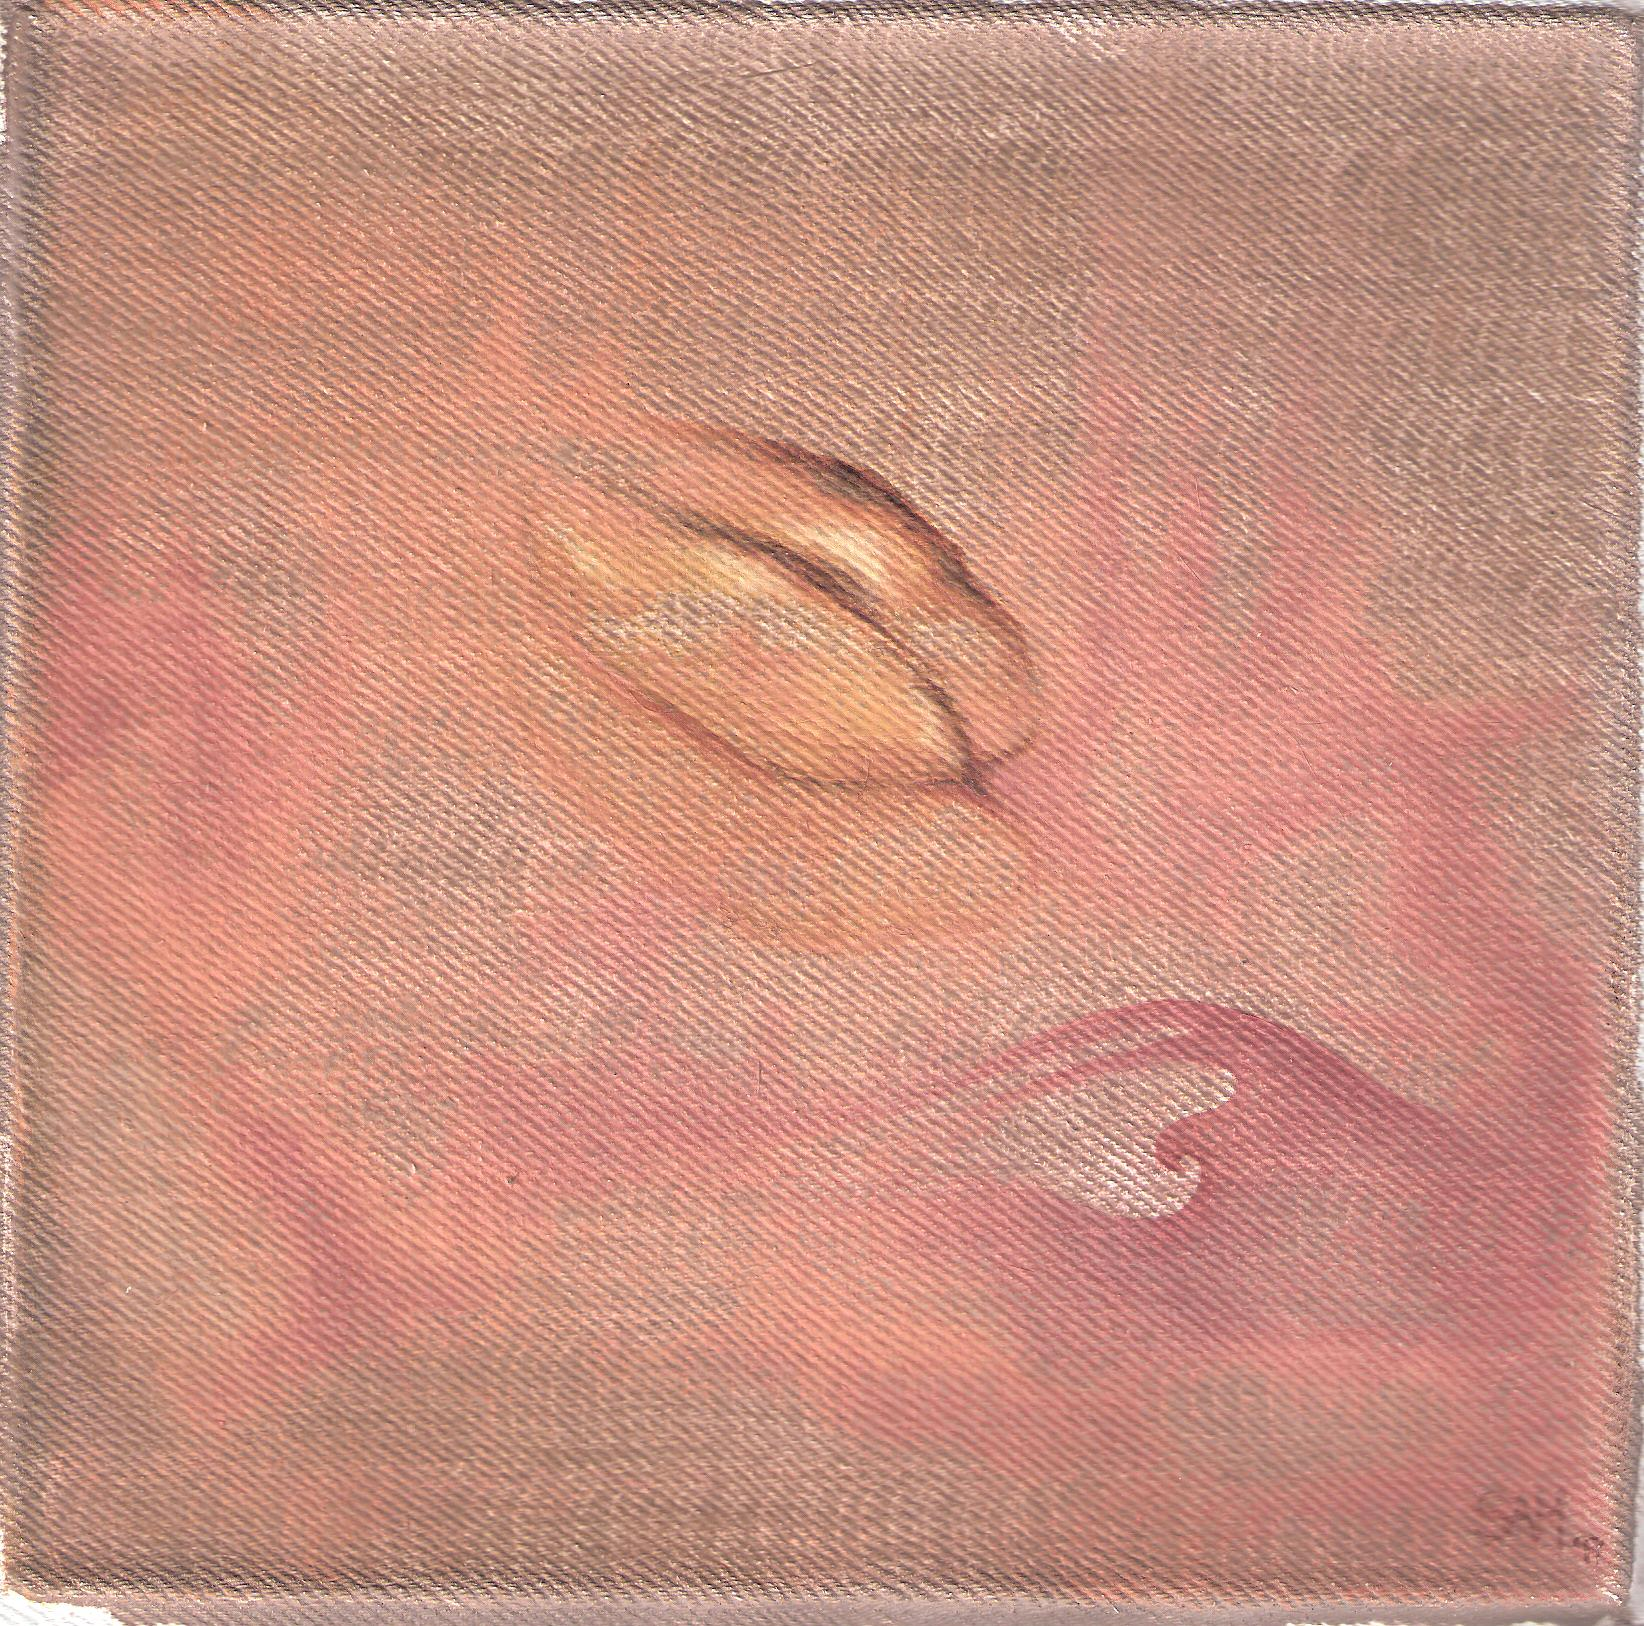 Papaya Suave-  1997 oil on canvas 30cm x 30cm (sold)